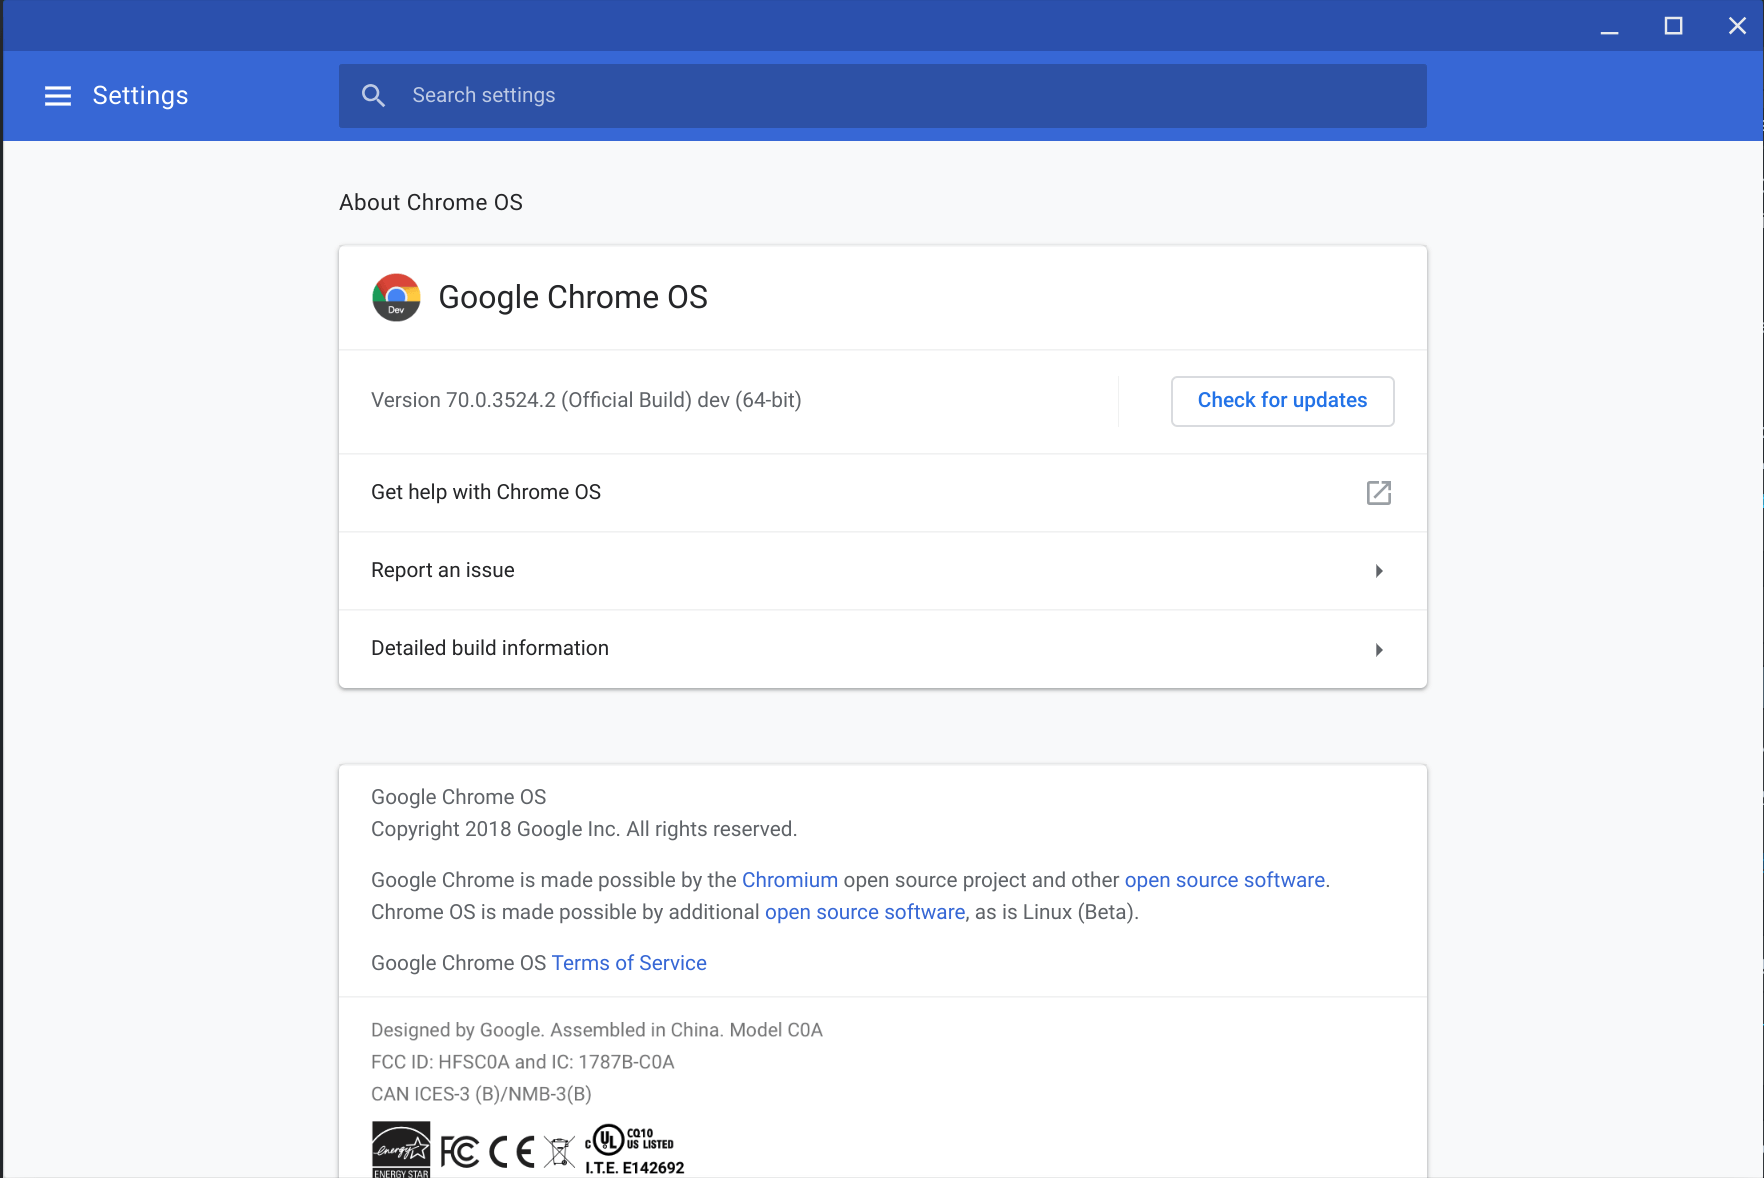 ChromeOS 70.0.3524.2 rolling out to users in the Dev Channel